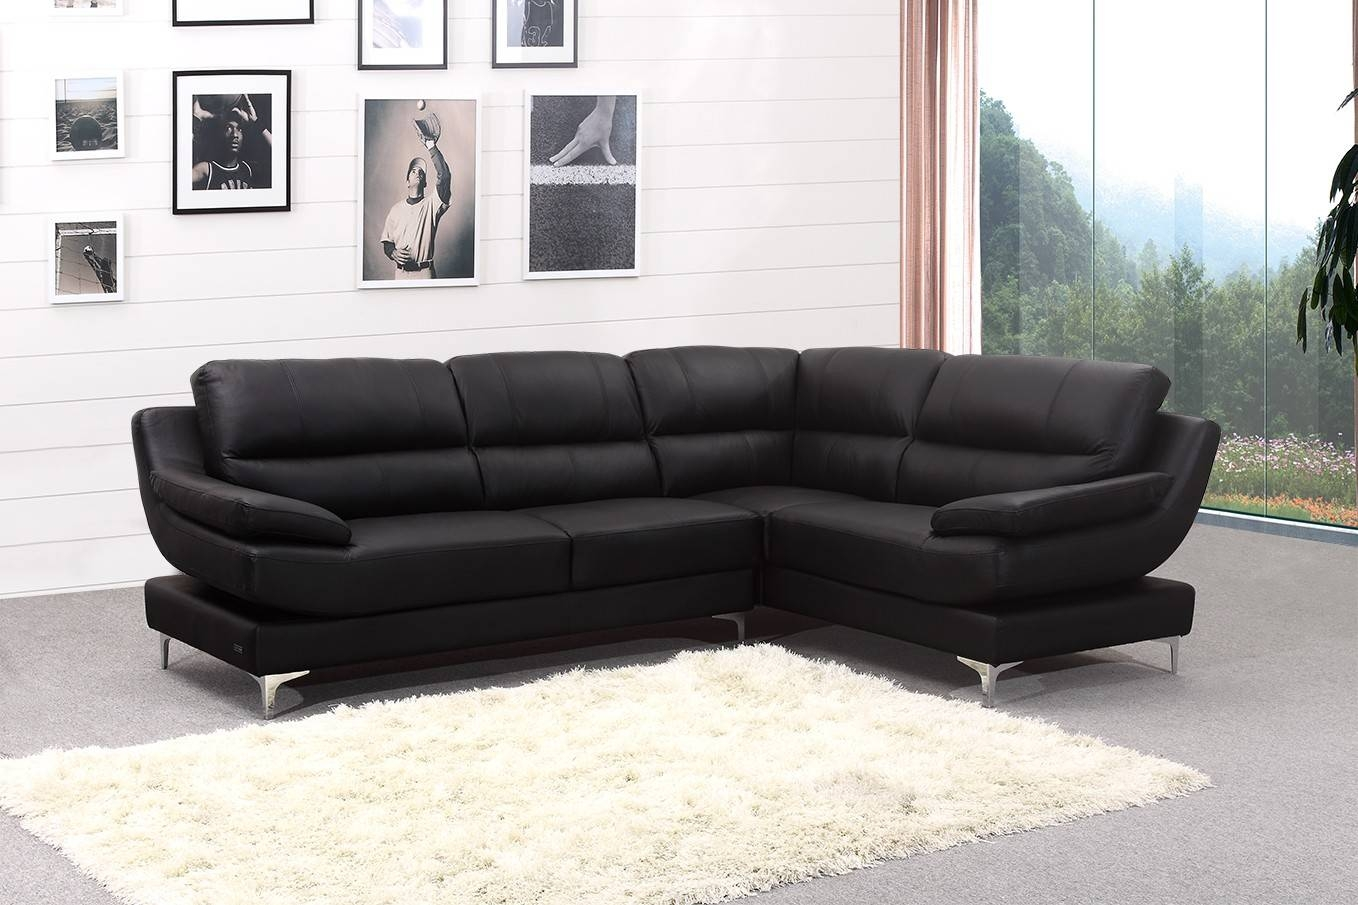 Brilliant Leather Corner Sofa Leather Corner Sofas Groups In A throughout Corner Sofa Leather (Image 2 of 30)